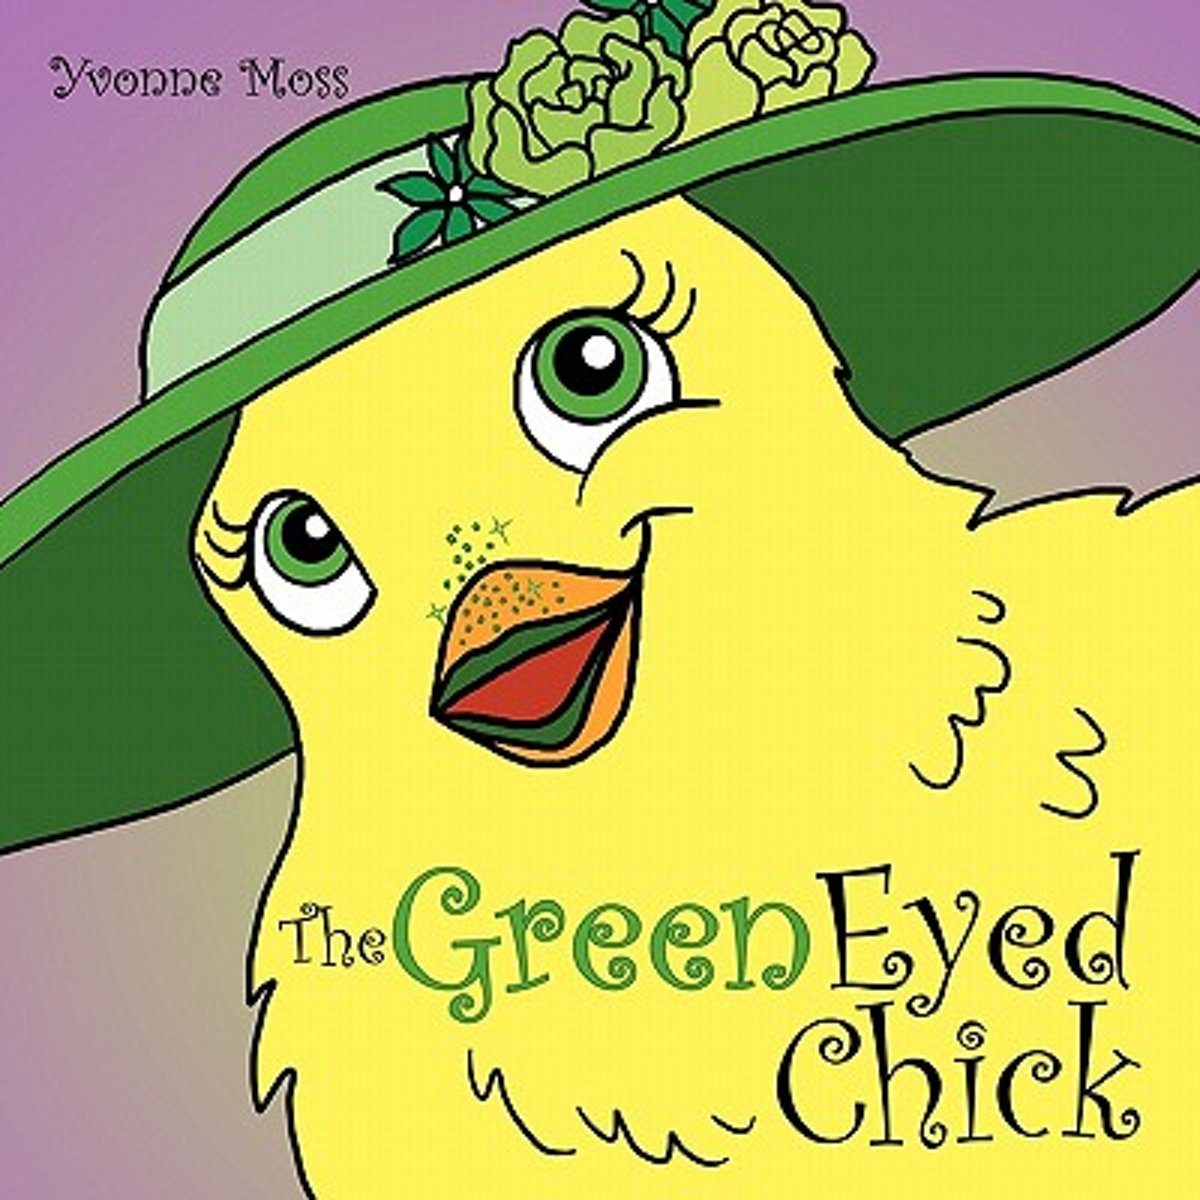 The Green Eyed Chick